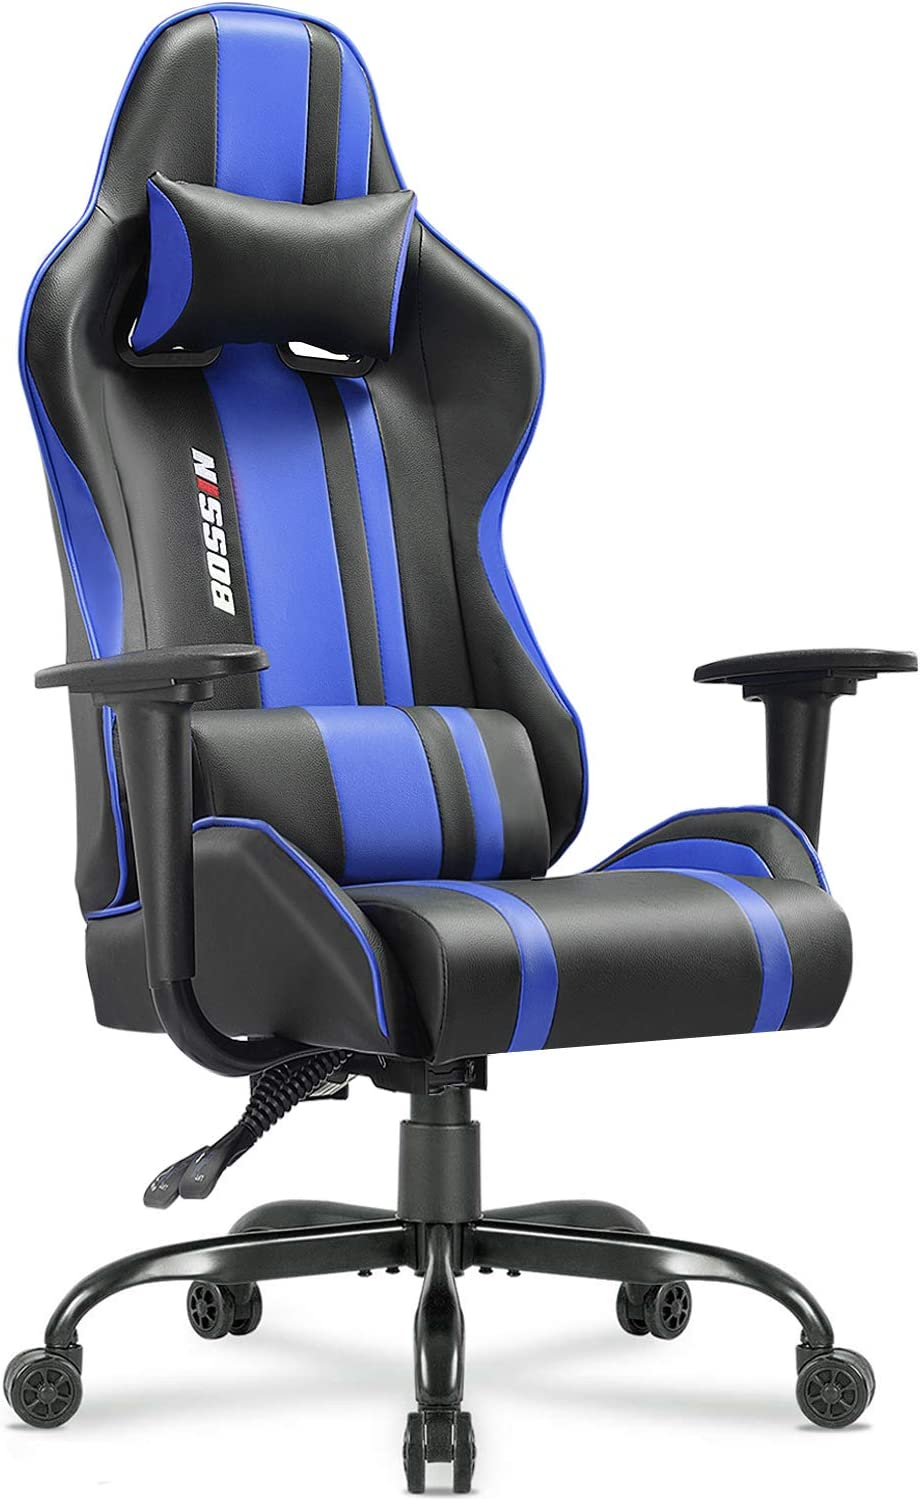 Bossin Gaming Chair Racing Style High-Back Computer Gaming Chairs Swivel Ergonomic Executive Office Leather Chair Video Gaming Chair Blue